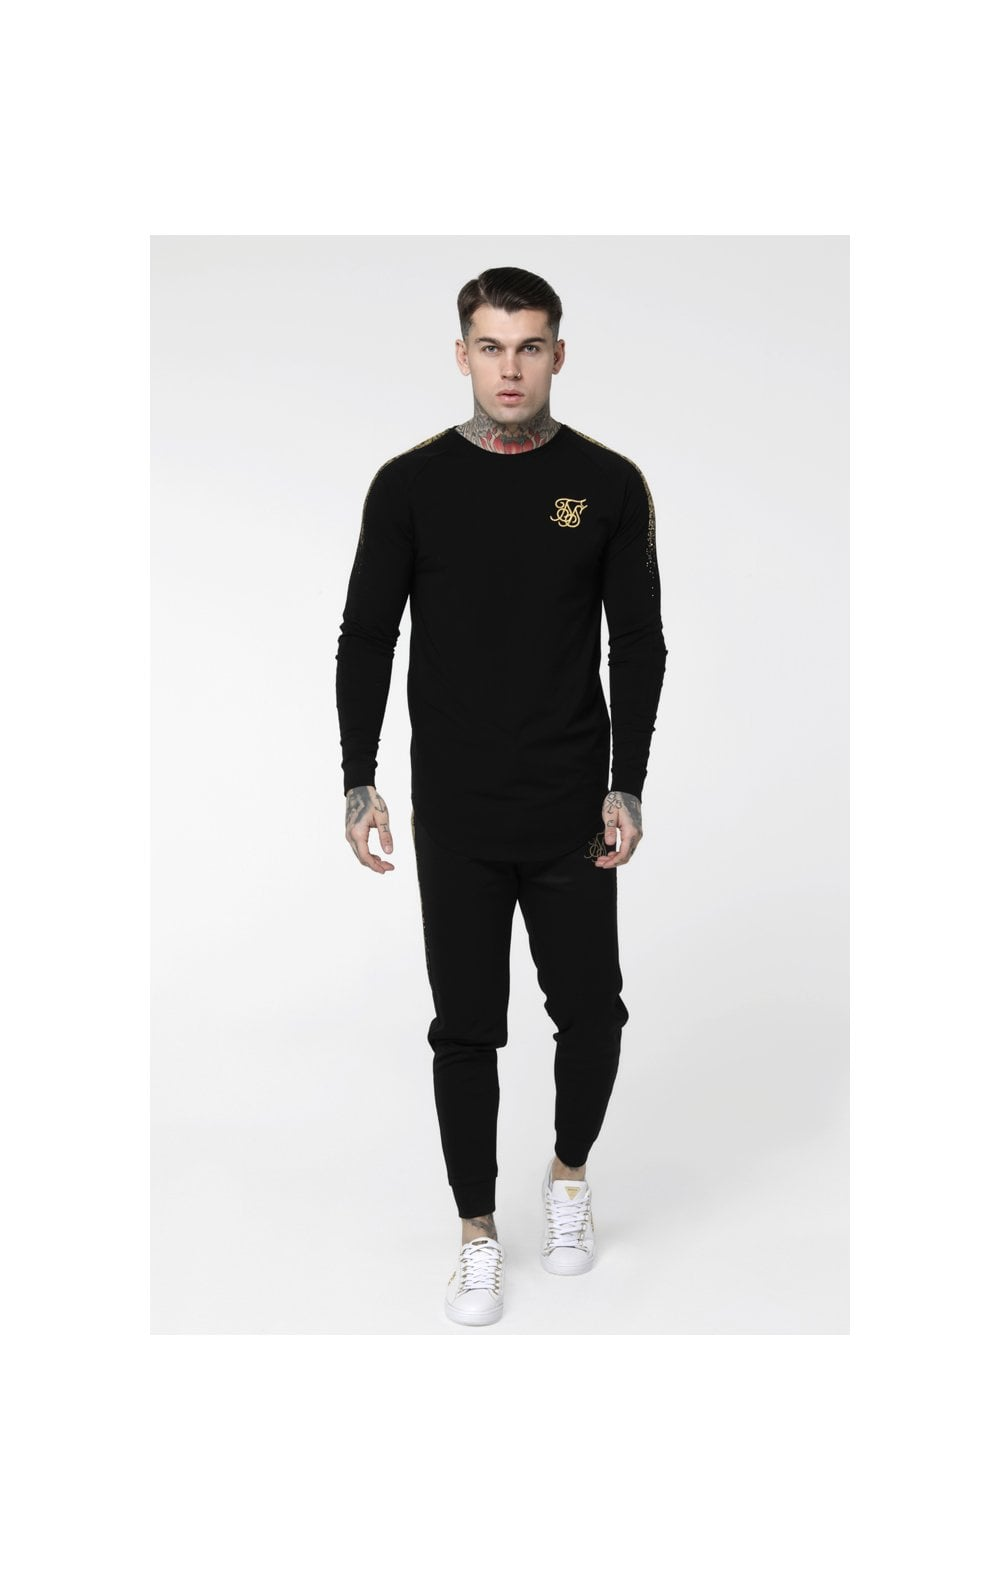 Load image into Gallery viewer, SikSilk L/S Foil Fade Panel Tee - Black & Gold (3)